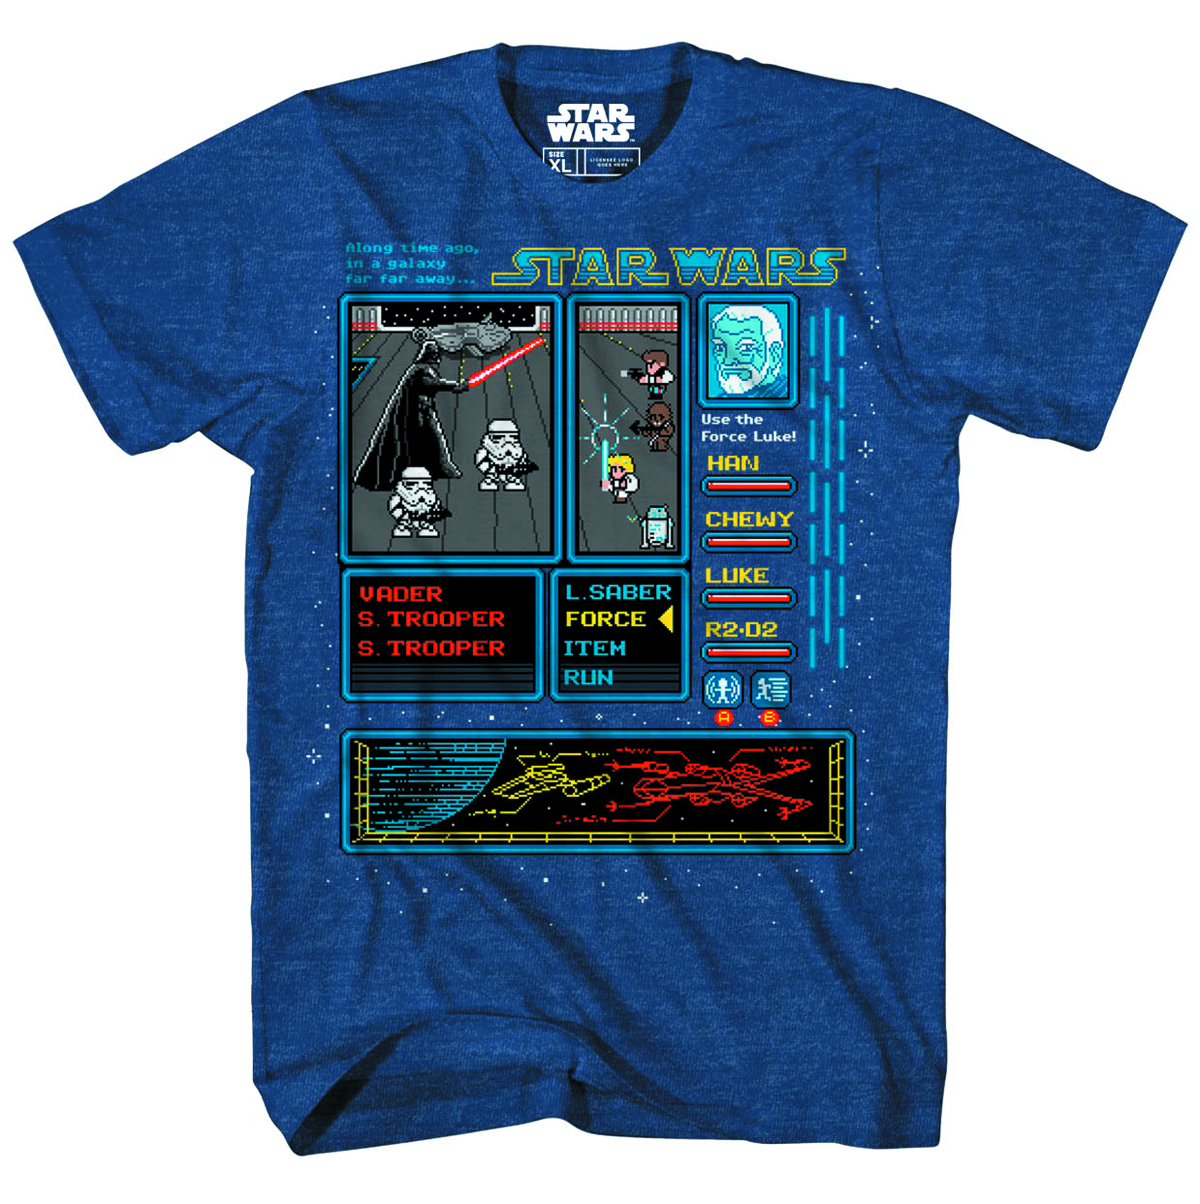 STAR WARS RPG WARD NAVY HEATHER T/S MED